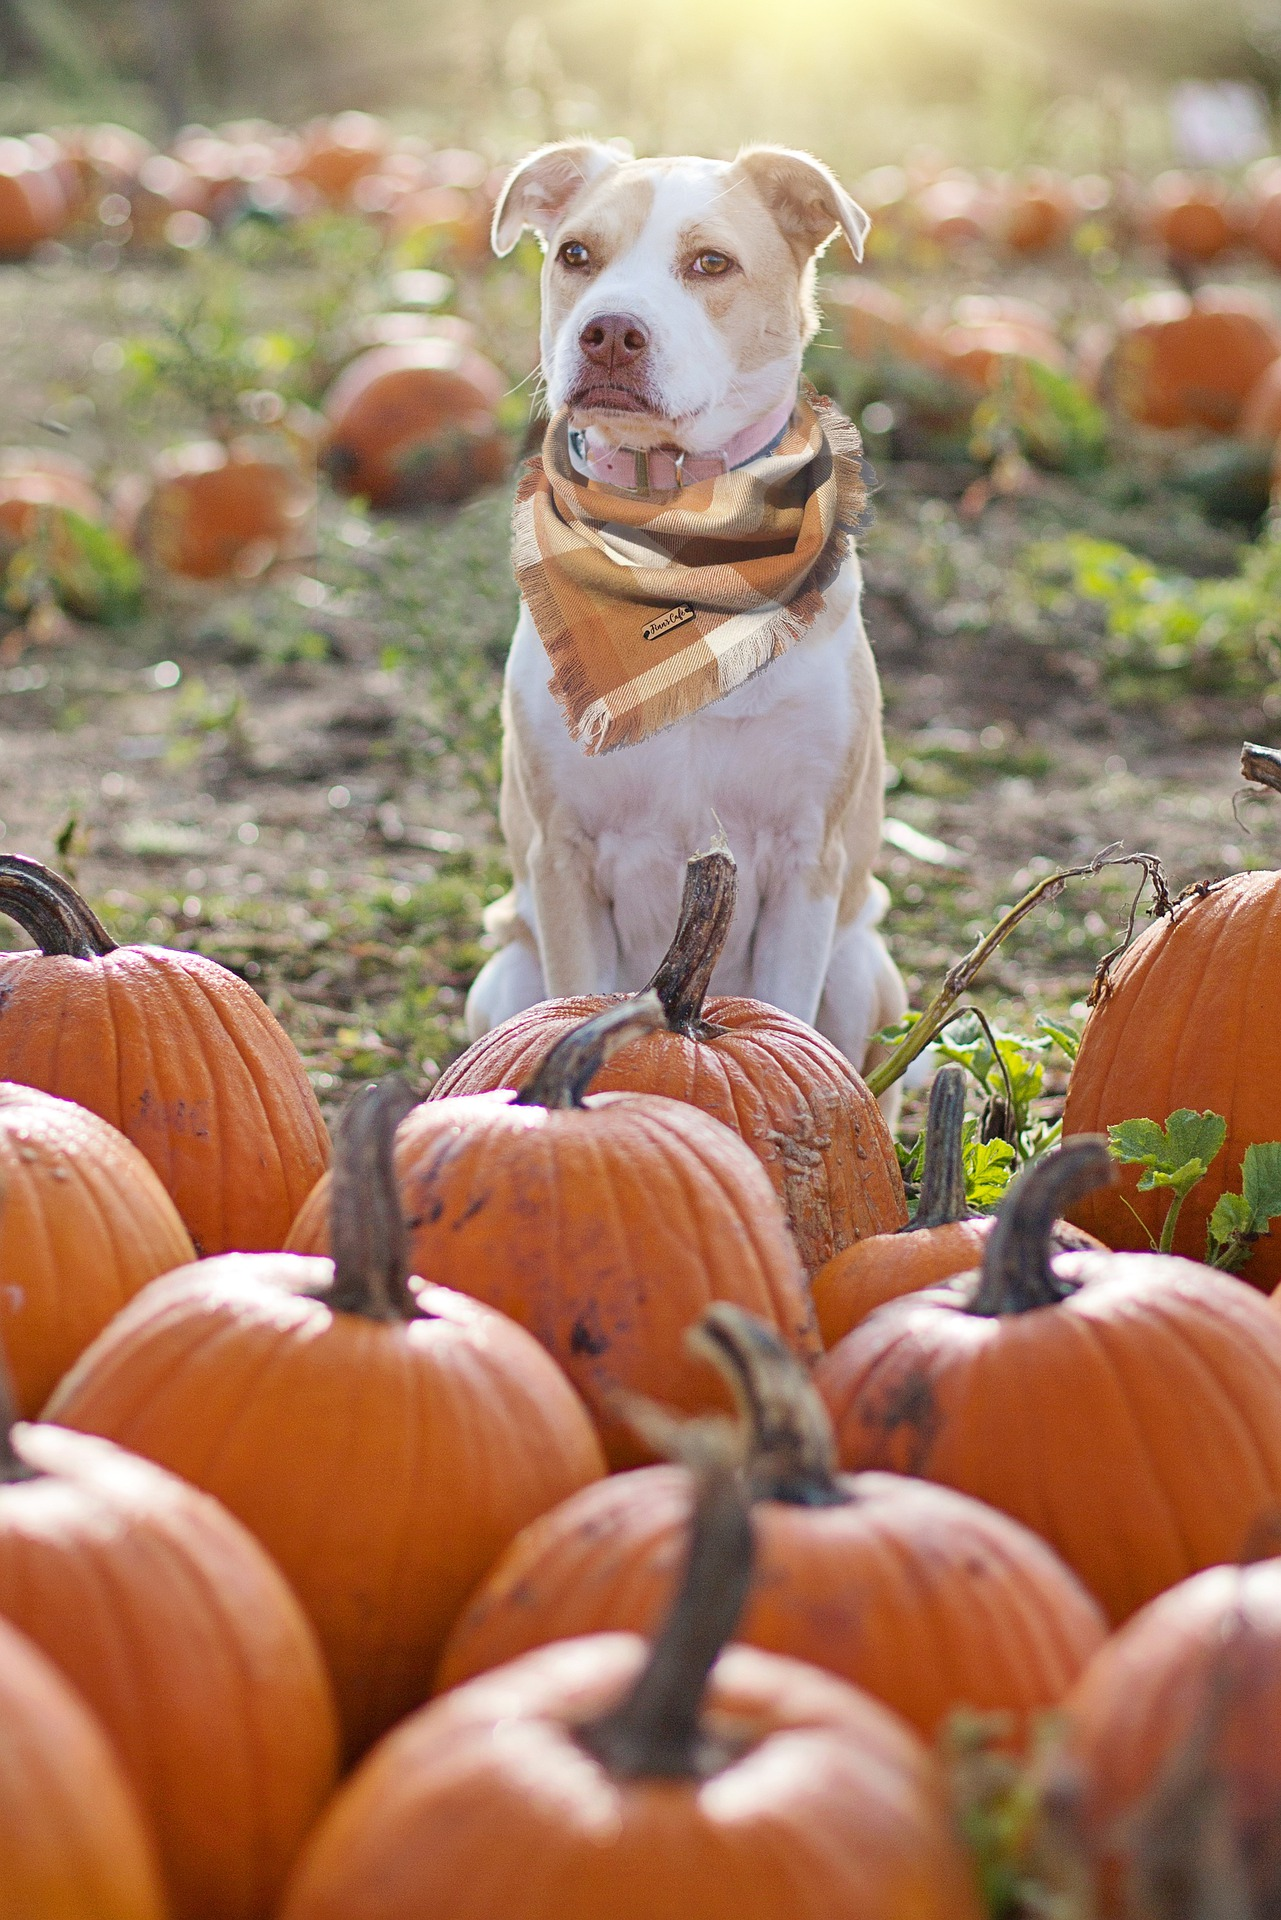 Photo of a Dog Sitting With Pumpkins